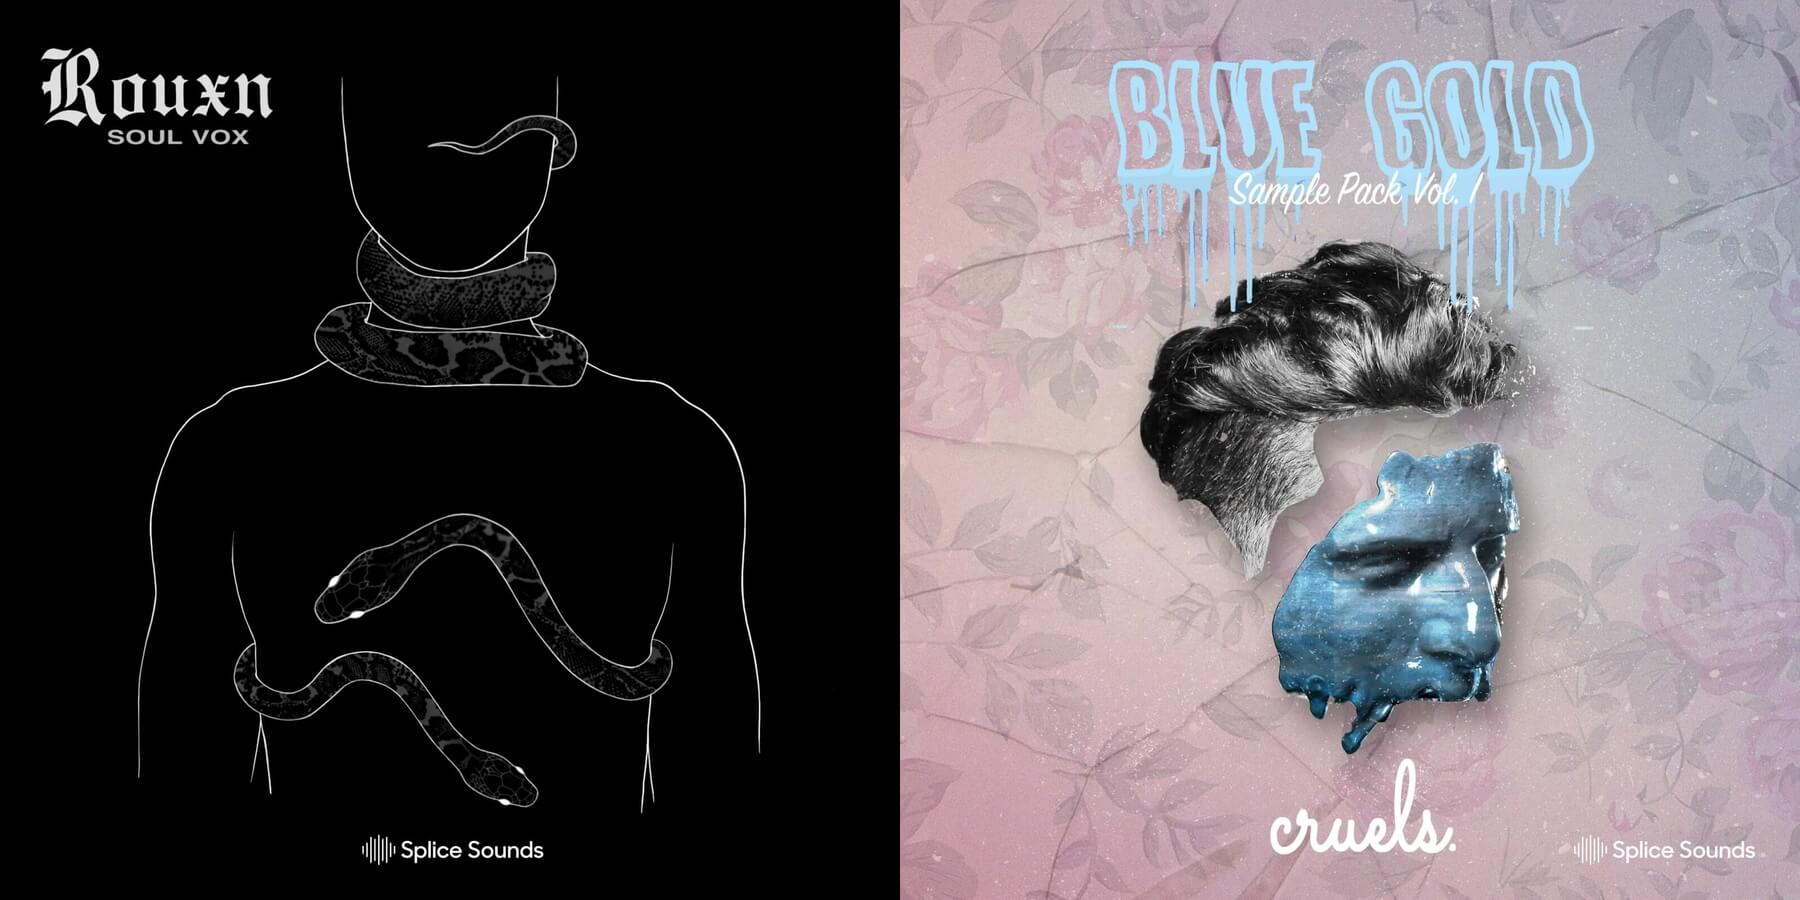 Rouxn: Soul Vox & Cruels: Blue Gold Sample Pack available at